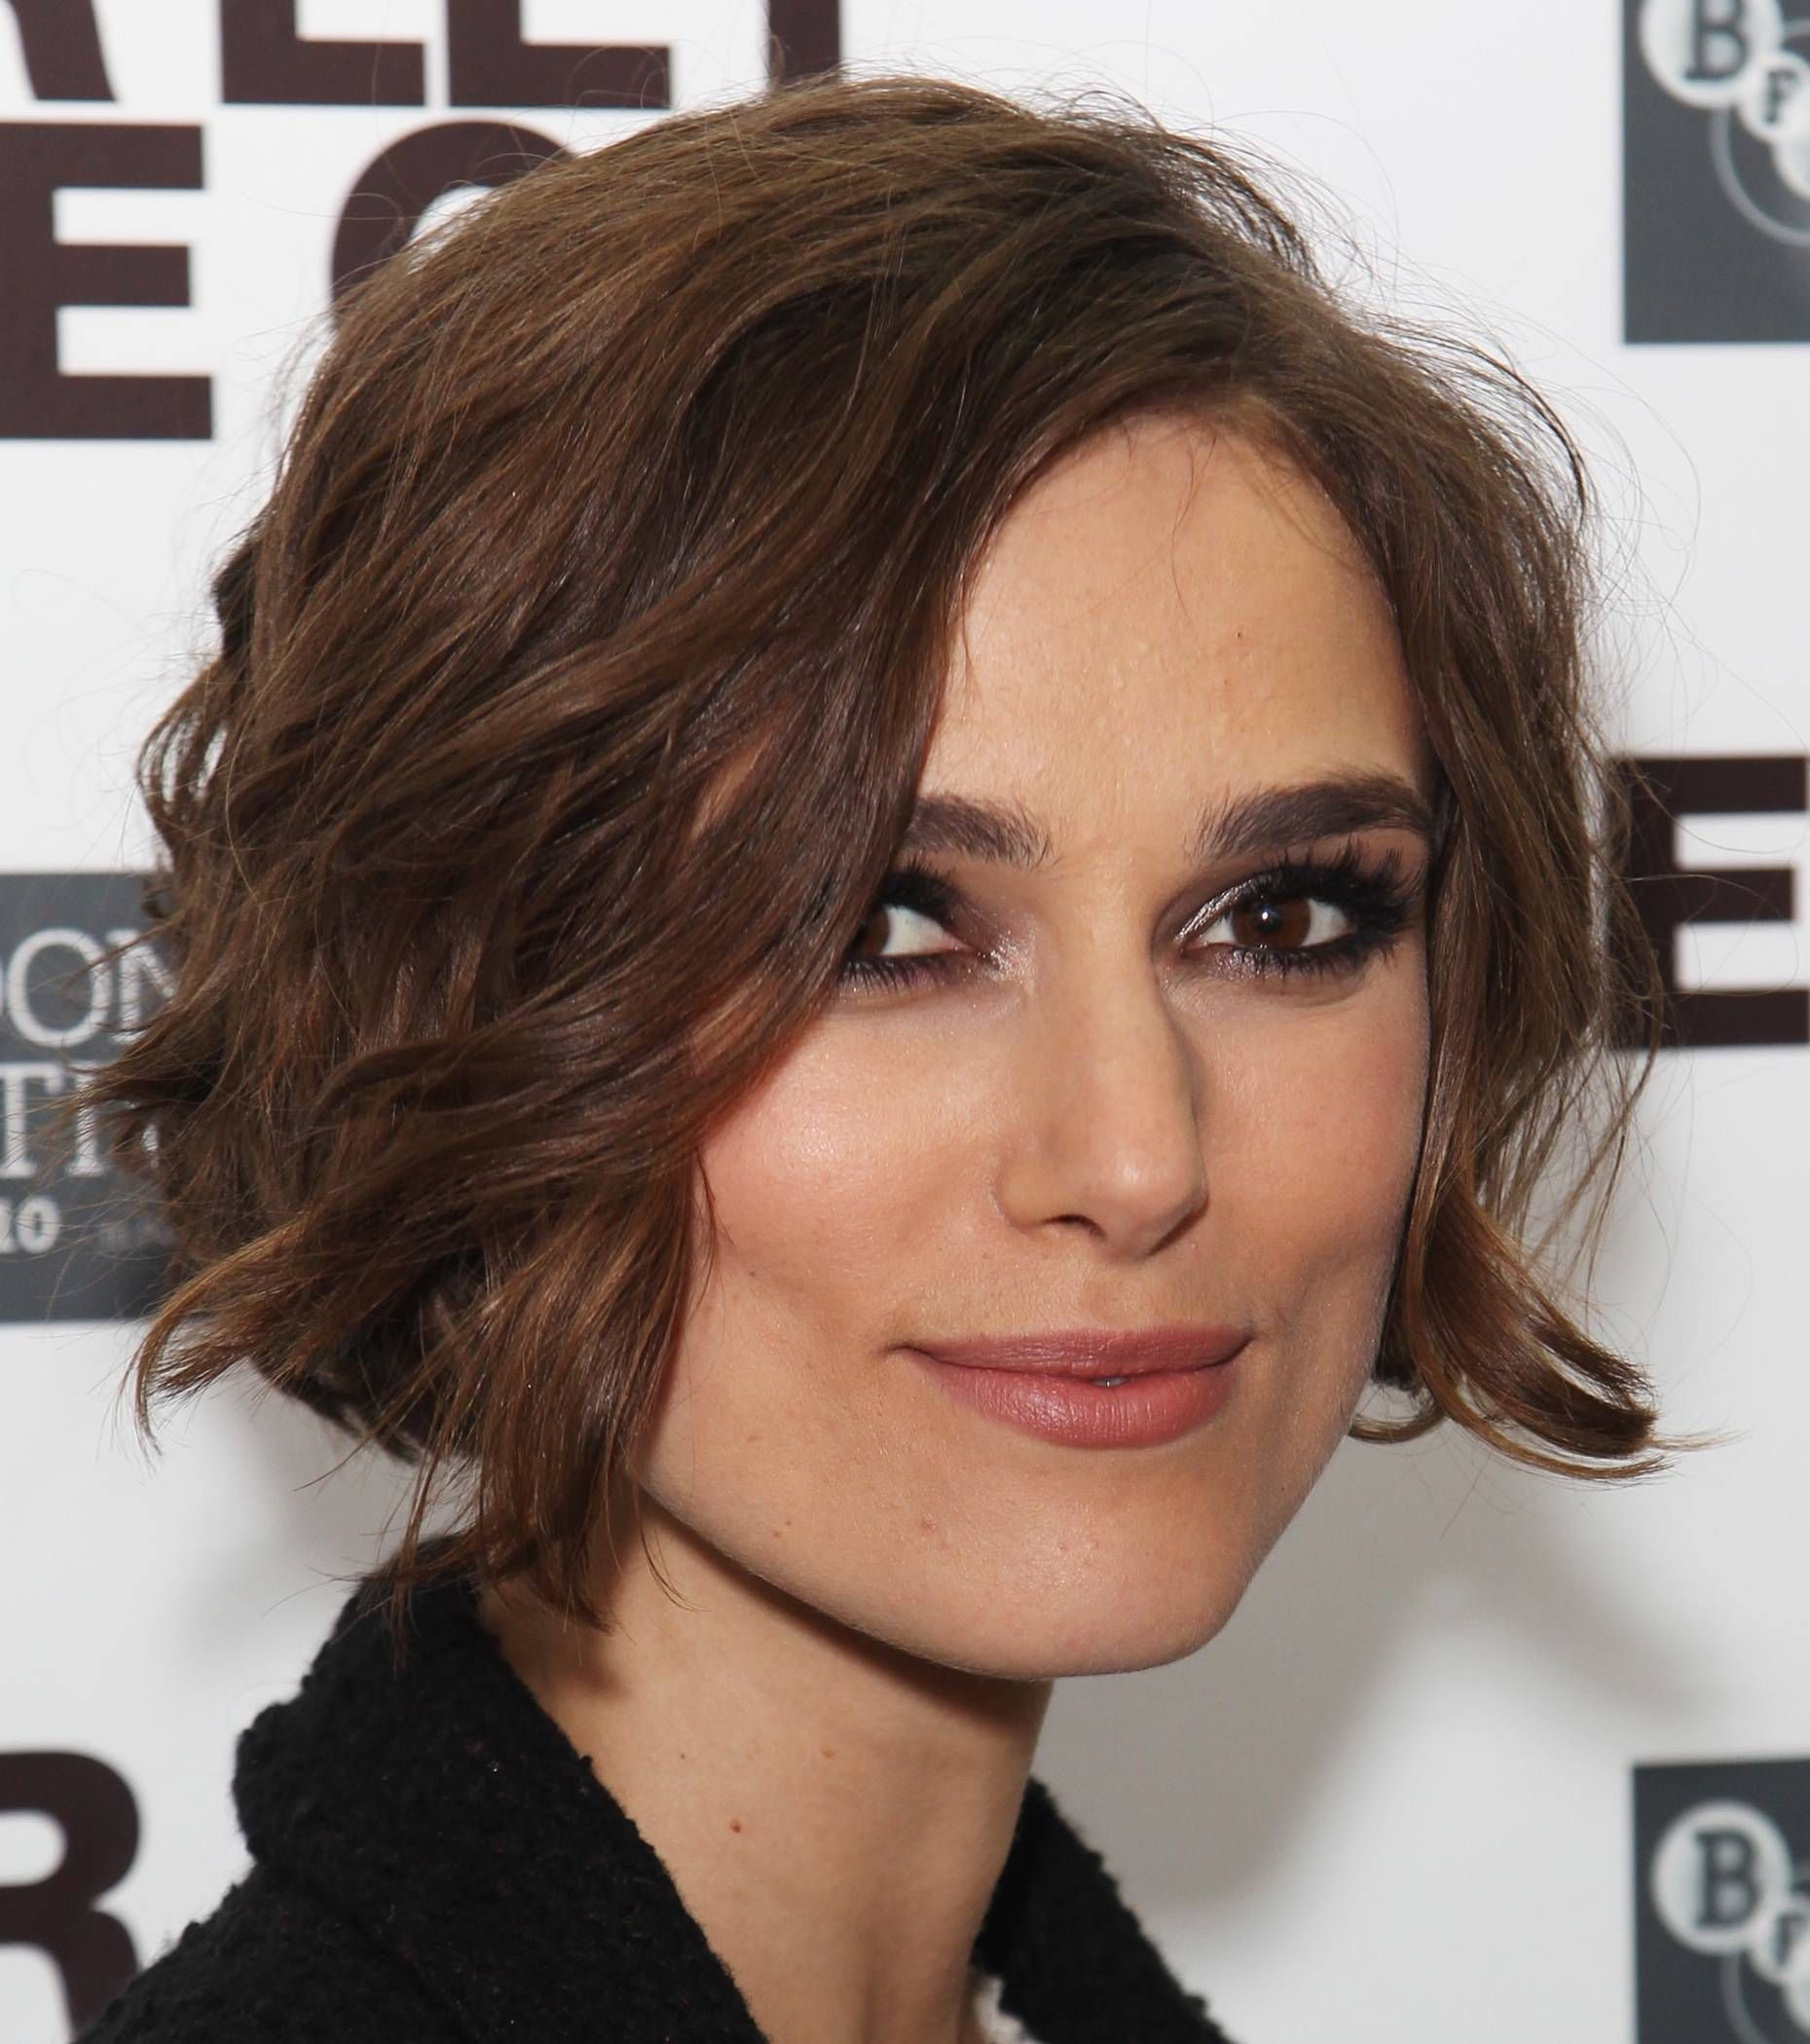 Low Maintenance Haircuts For Thick Hair Hairstyles 2015 Top All Hairstyles Square Face Hairstyles Haircuts For Wavy Hair Modern Bob Hairstyles